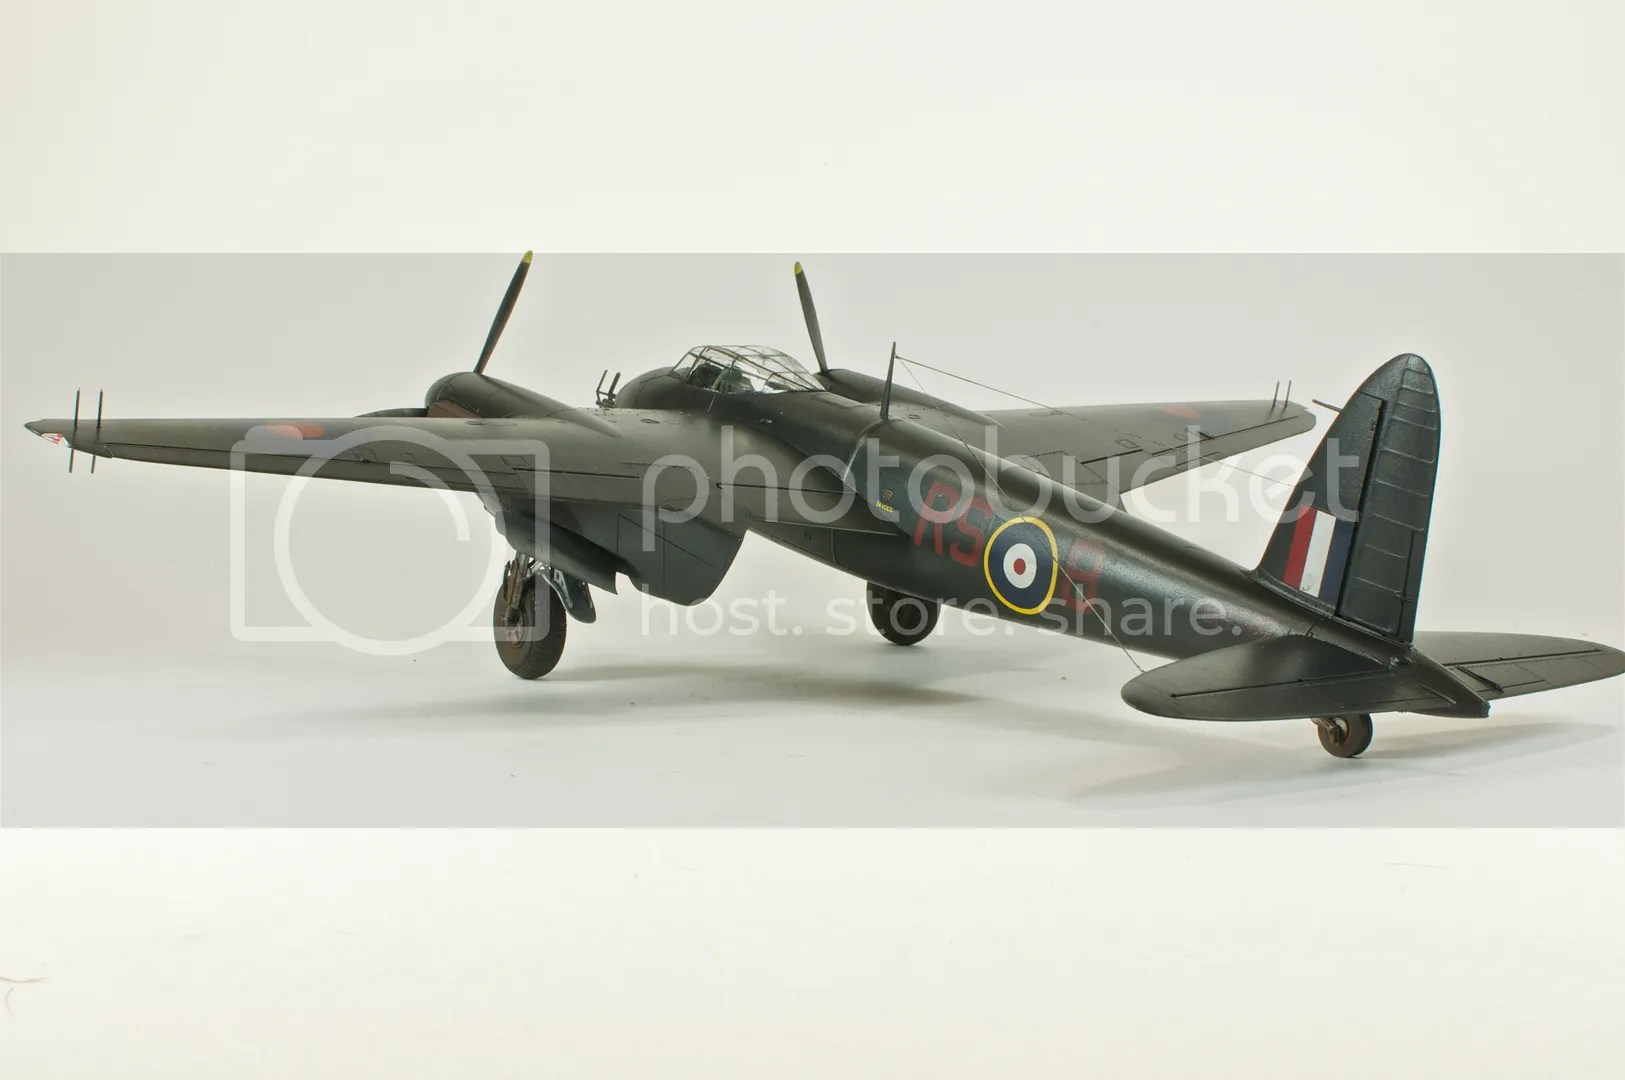 1/48,Mosquito NFII,March,Nikon D300s,2011,scale models,Tamiya